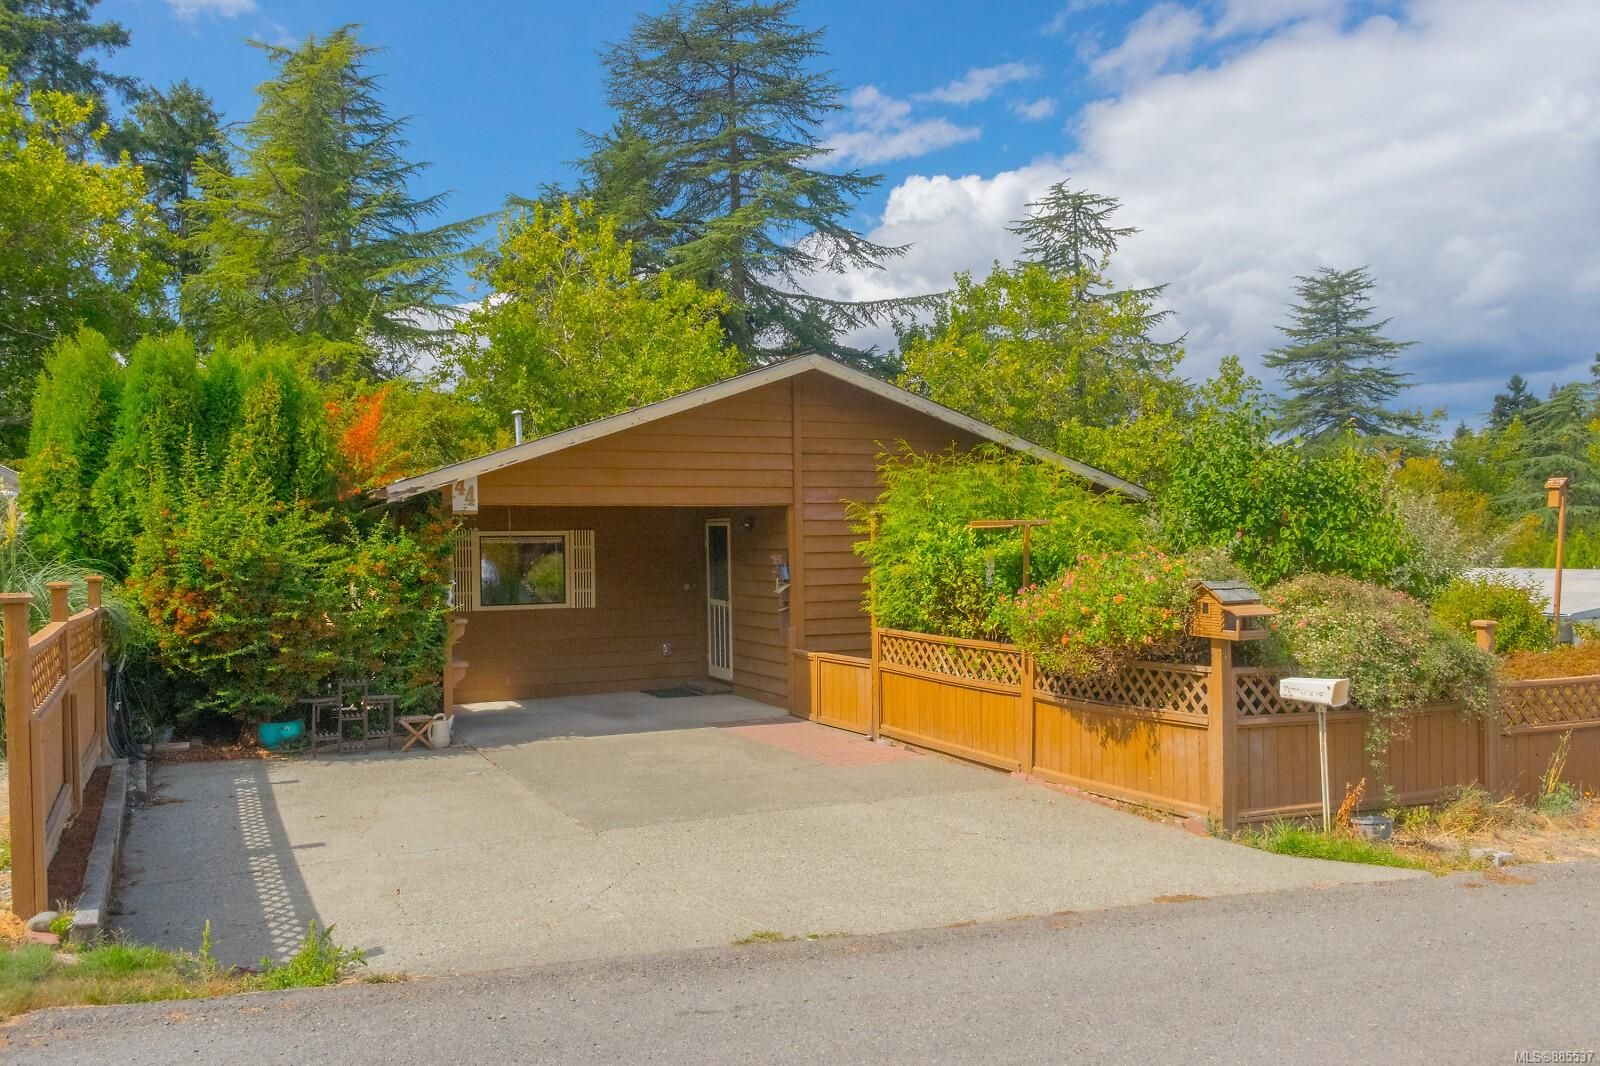 Main Photo: 44 1265 Cherry Point Rd in : ML Cobble Hill Manufactured Home for sale (Malahat & Area)  : MLS®# 885537